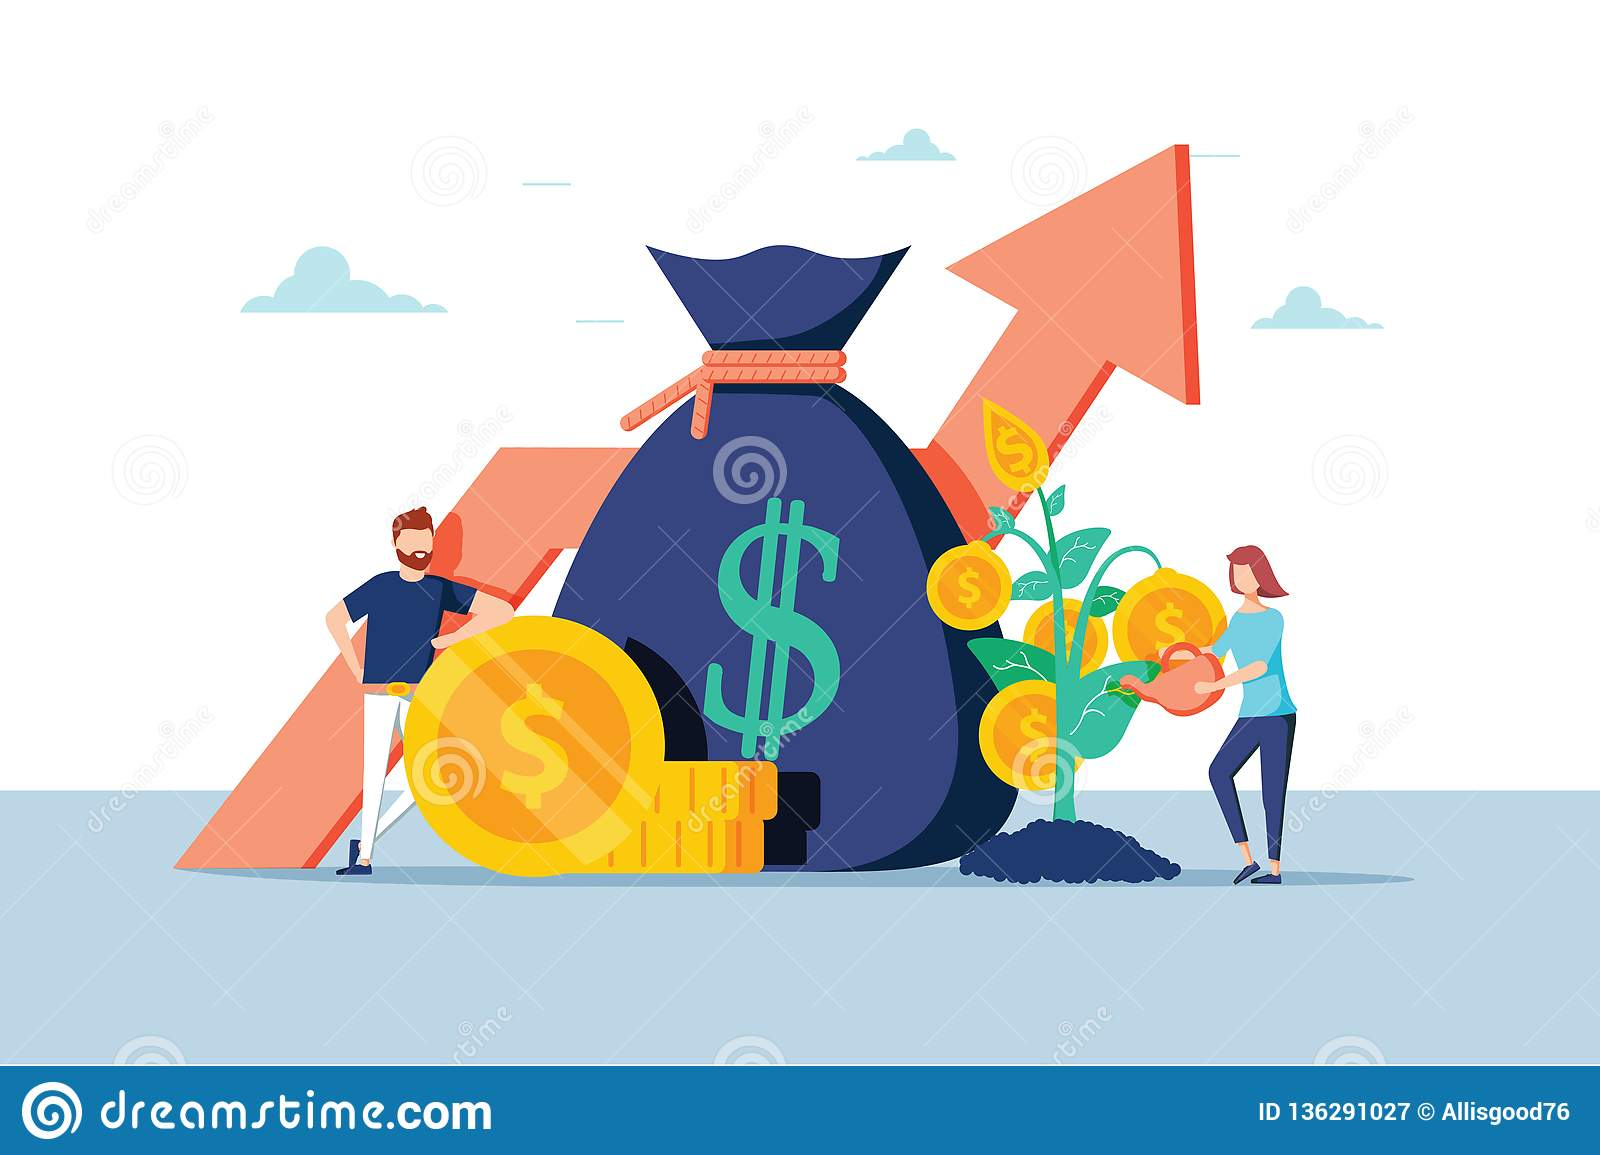 Investment Financial Business People Increasing Capital and Profits. Wealth and Savings with Characters. Earnings Money